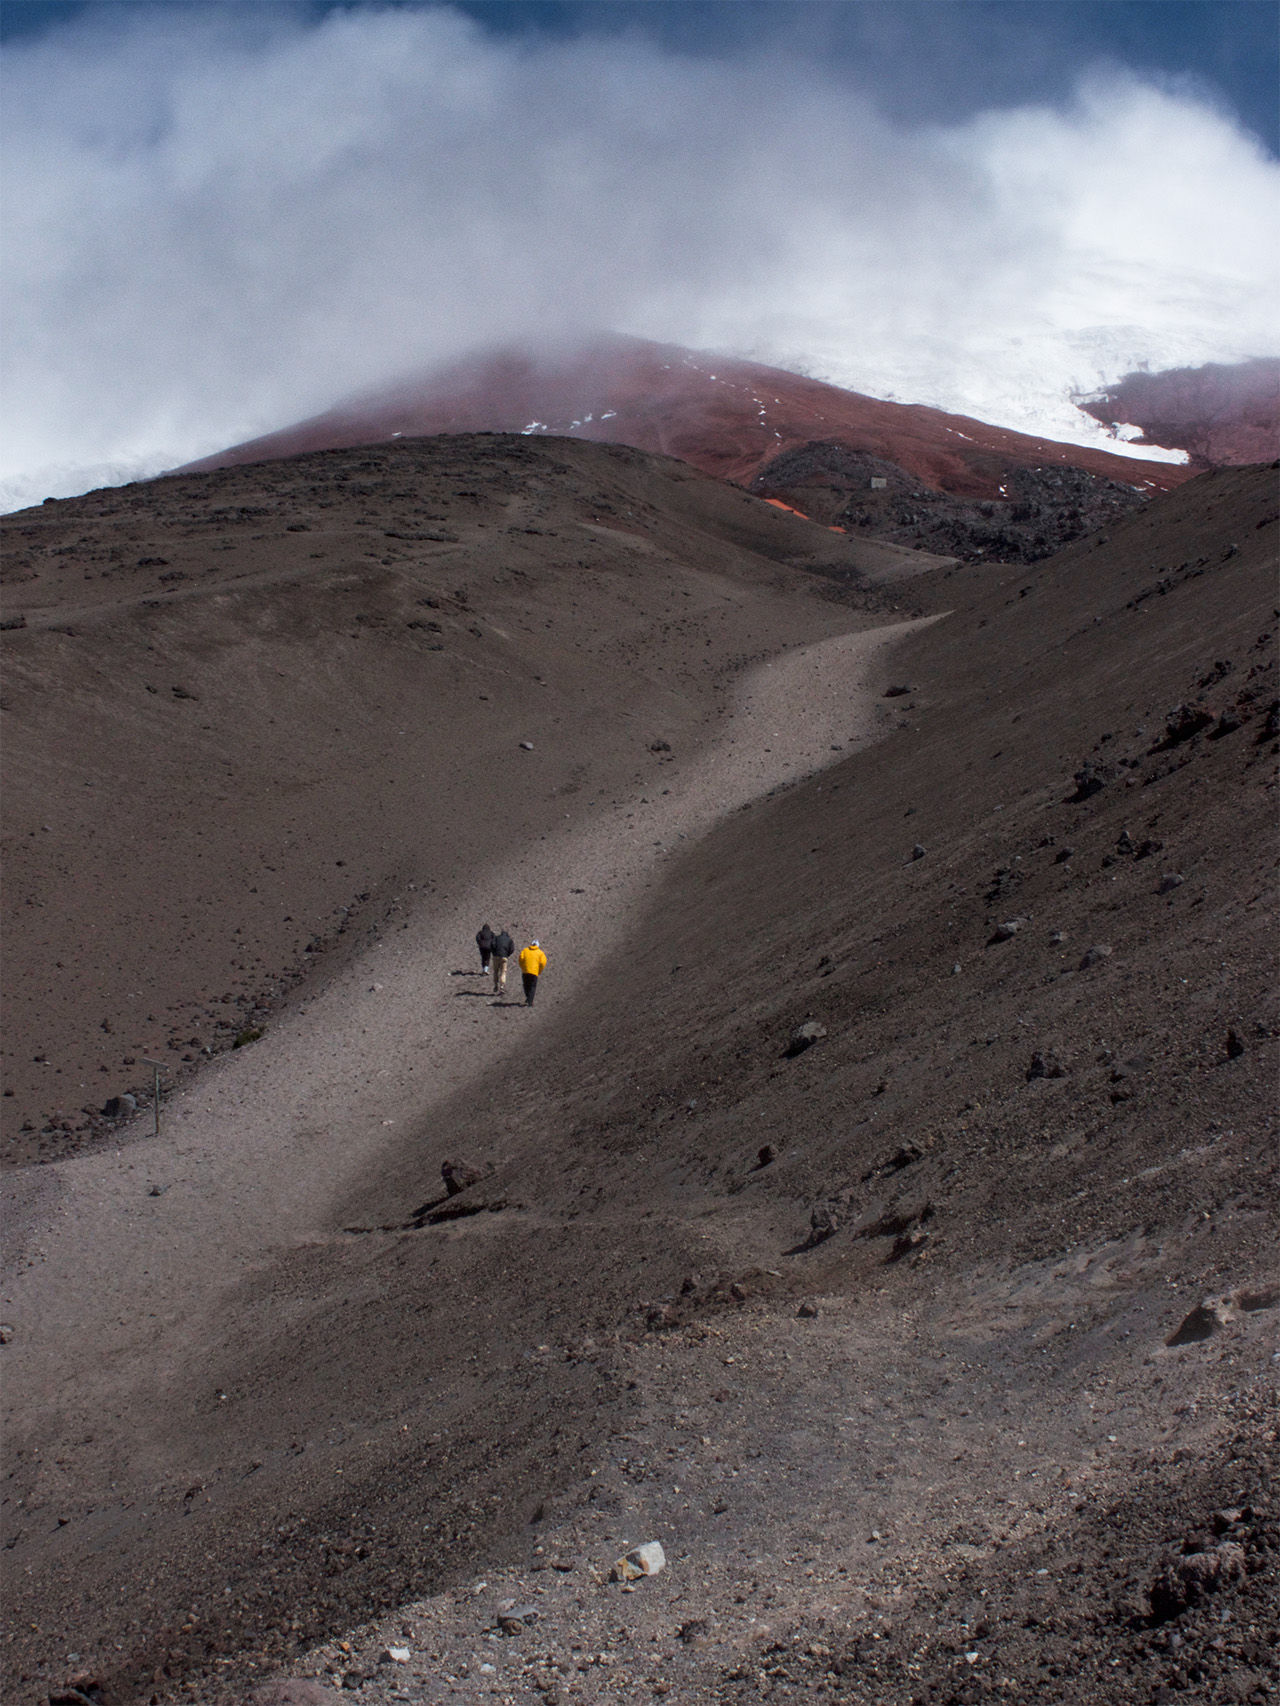 Ascending to the second shelter located at 4,864 meters above sea level. Cotopaxi, Ecuador.